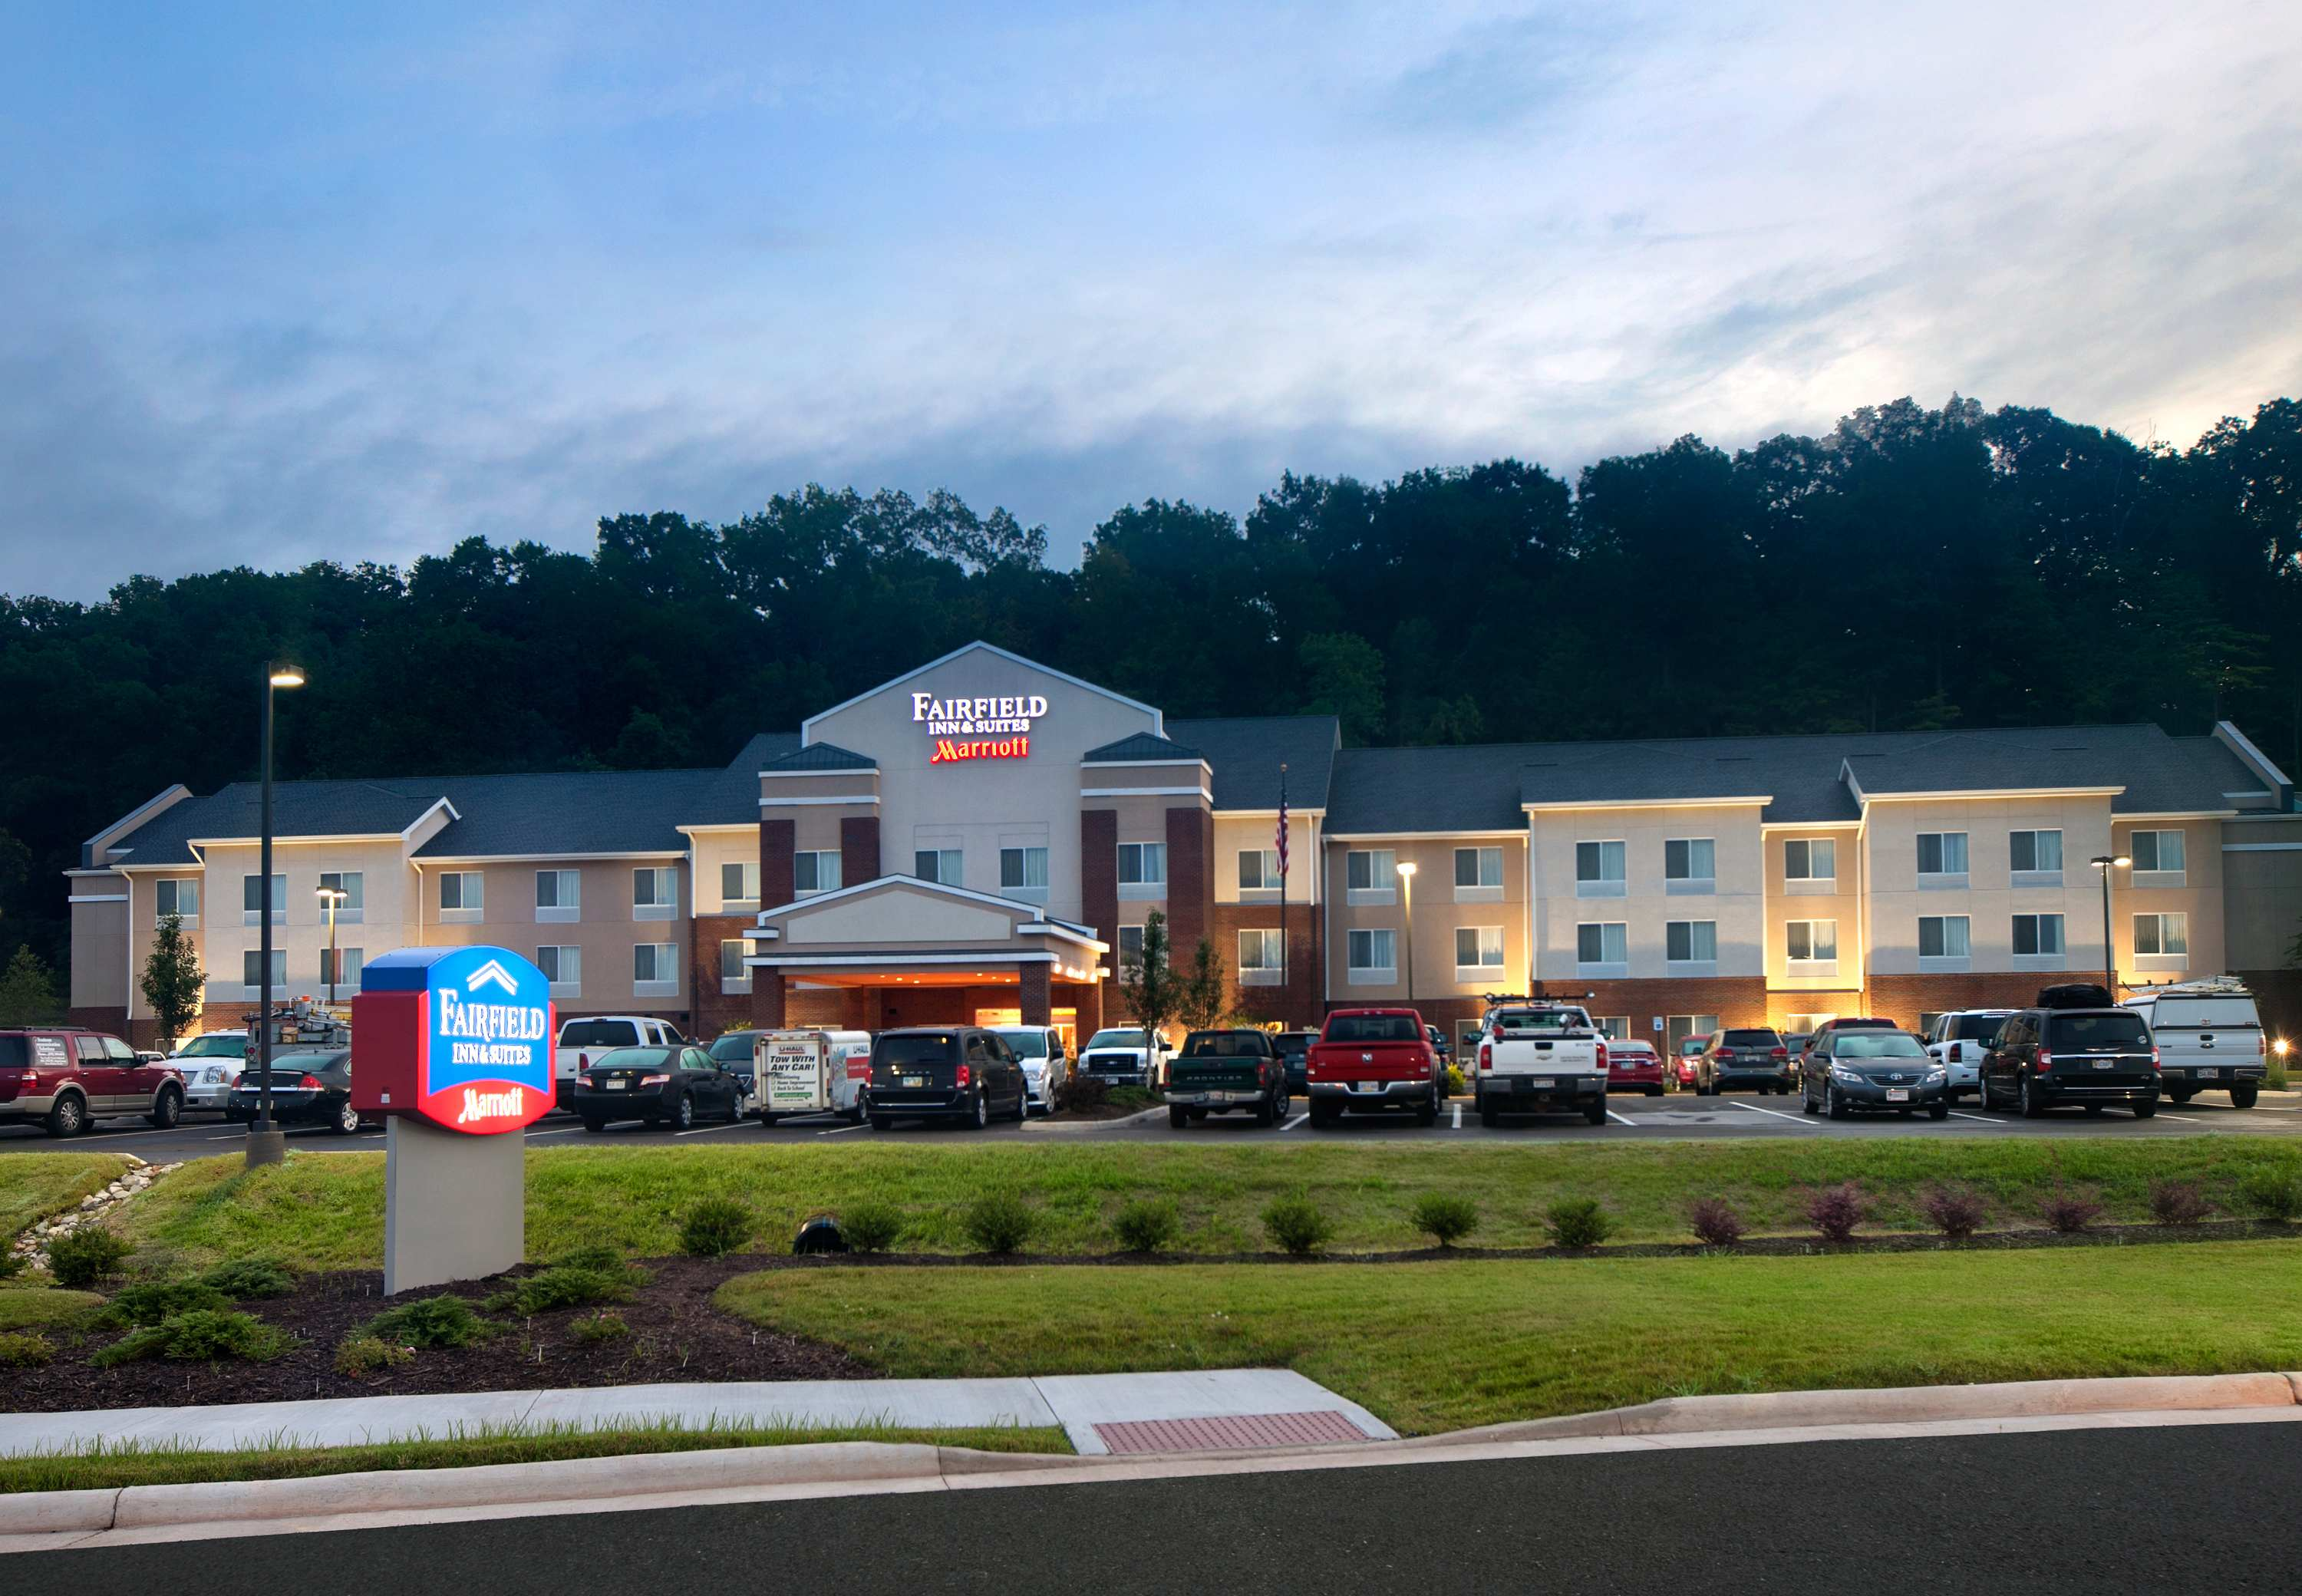 Fairfield Inn - Merrimack